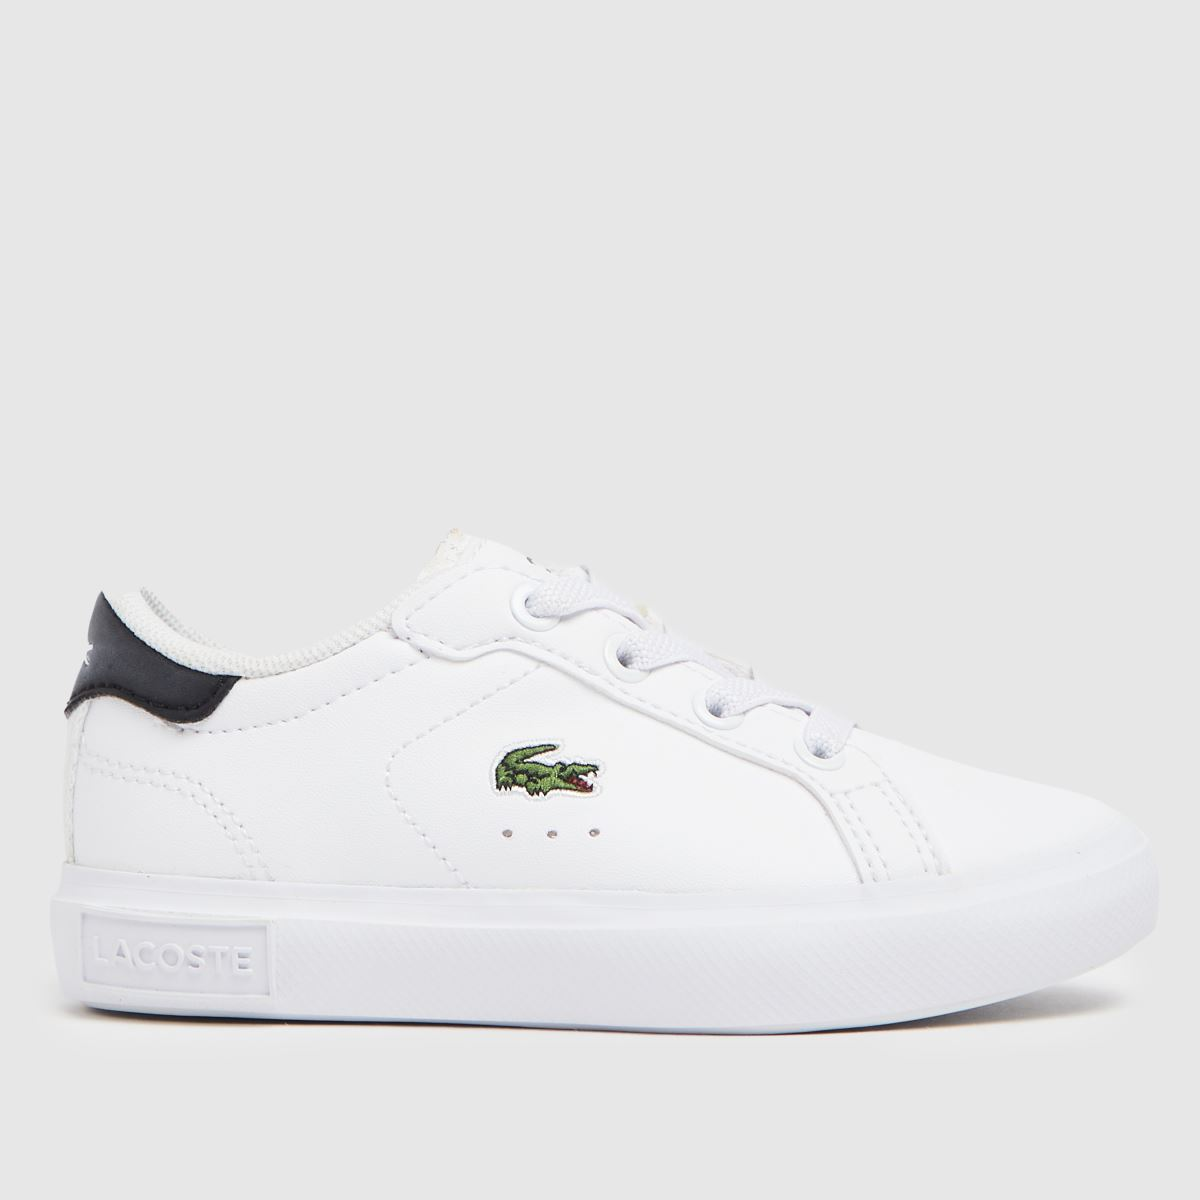 Lacoste White & Black Powercourt Trainers Toddler